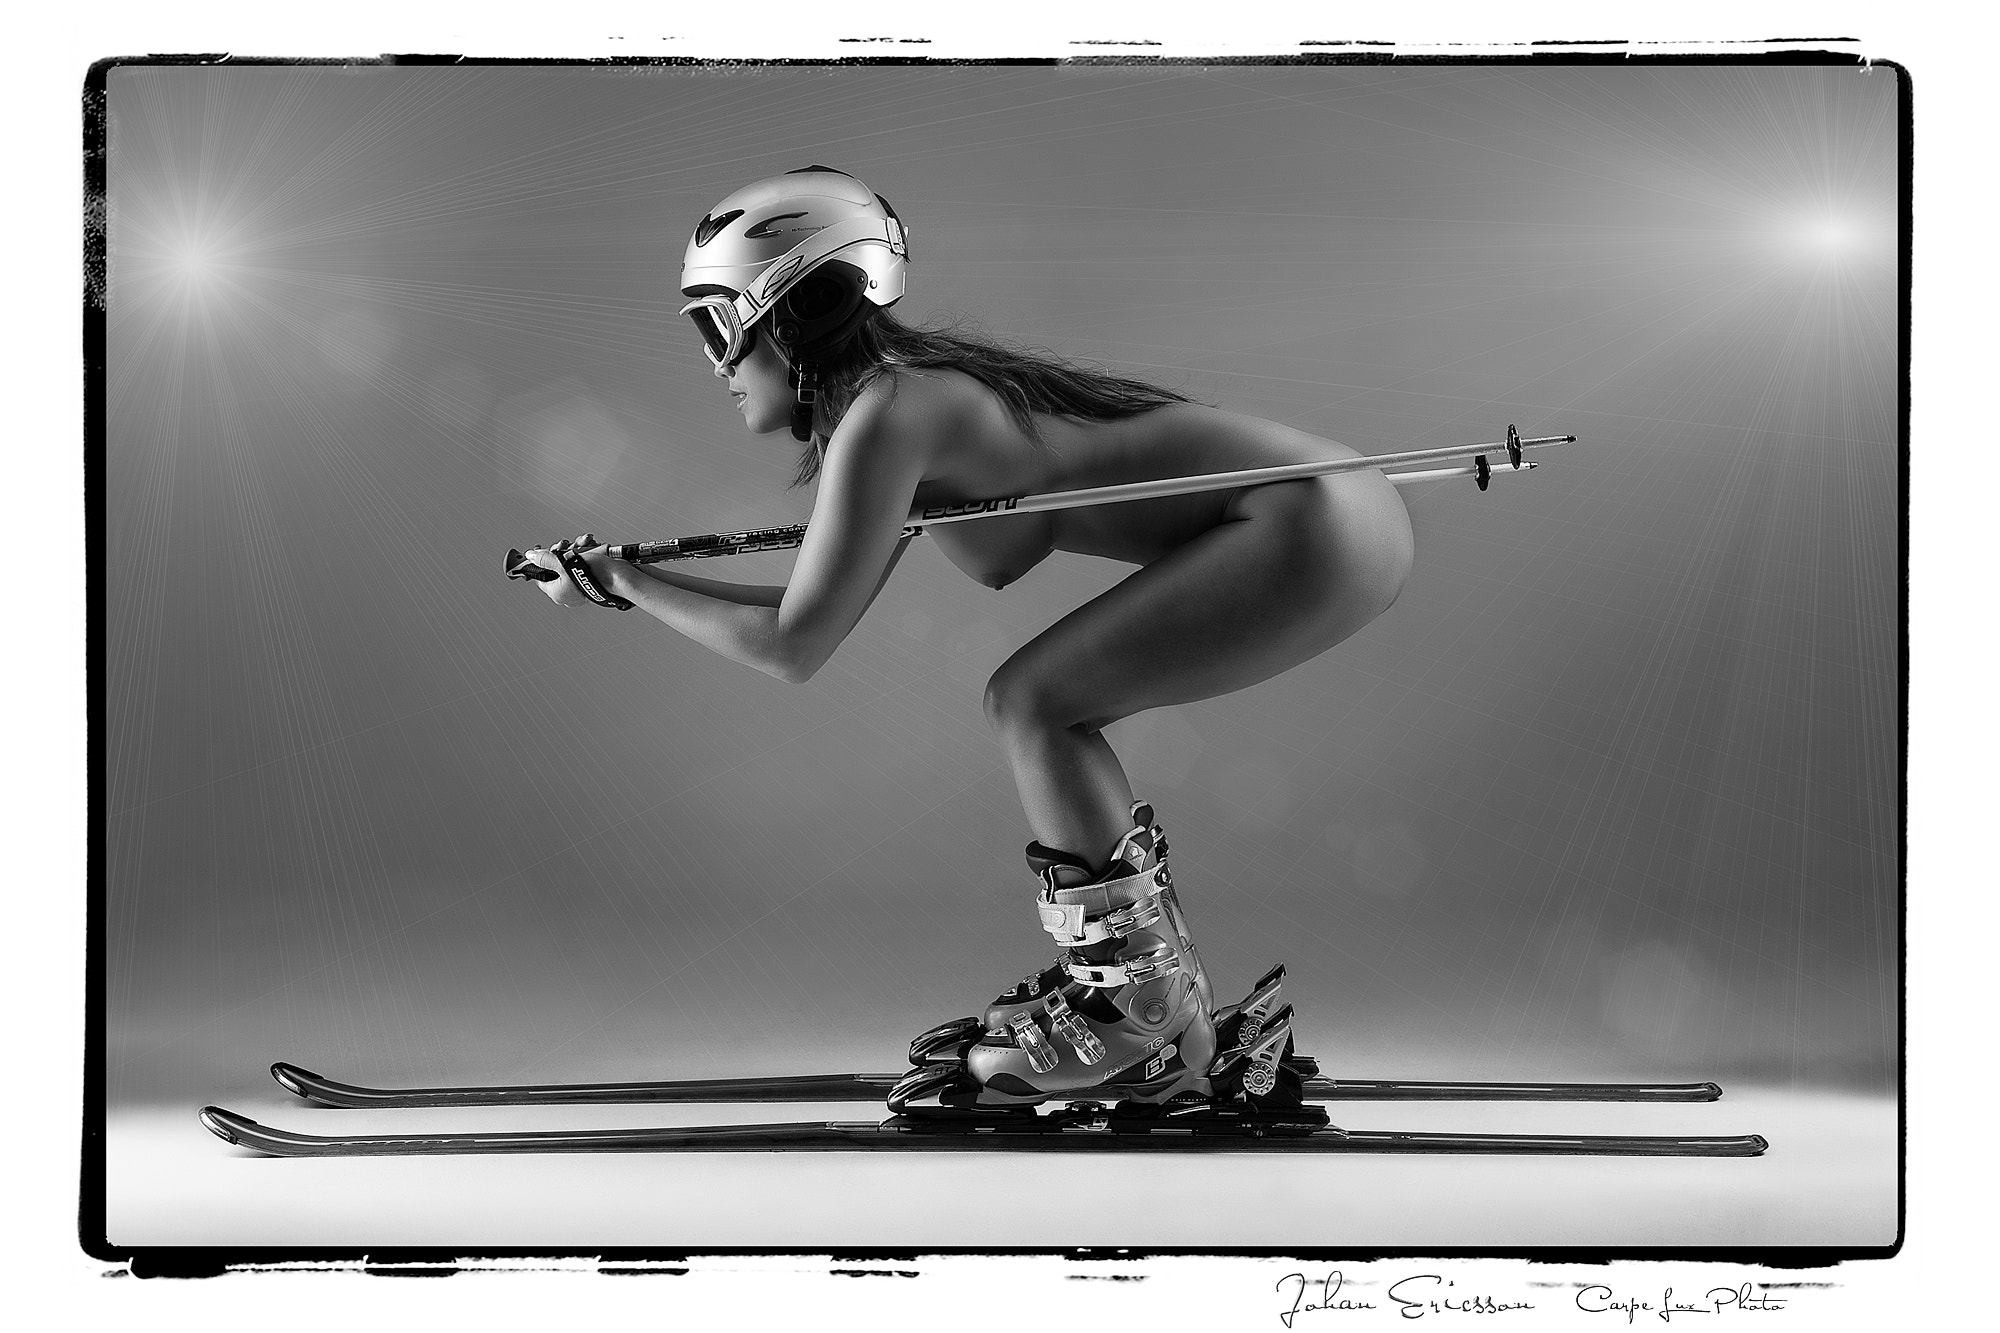 Photograph Skiing by carpeluxphoto on 500px